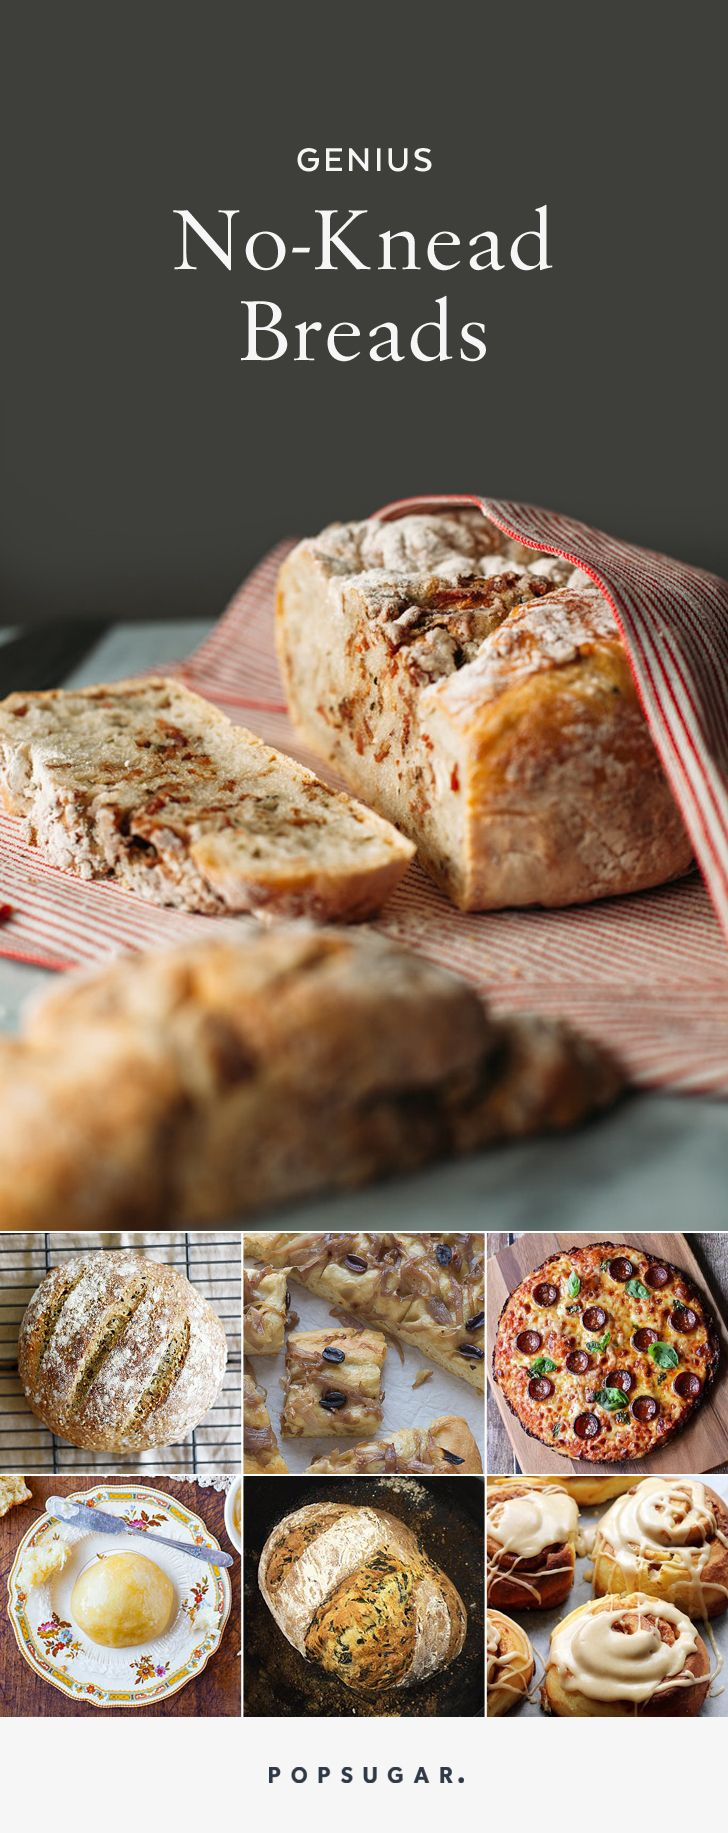 16 genius variations on no-knead bread